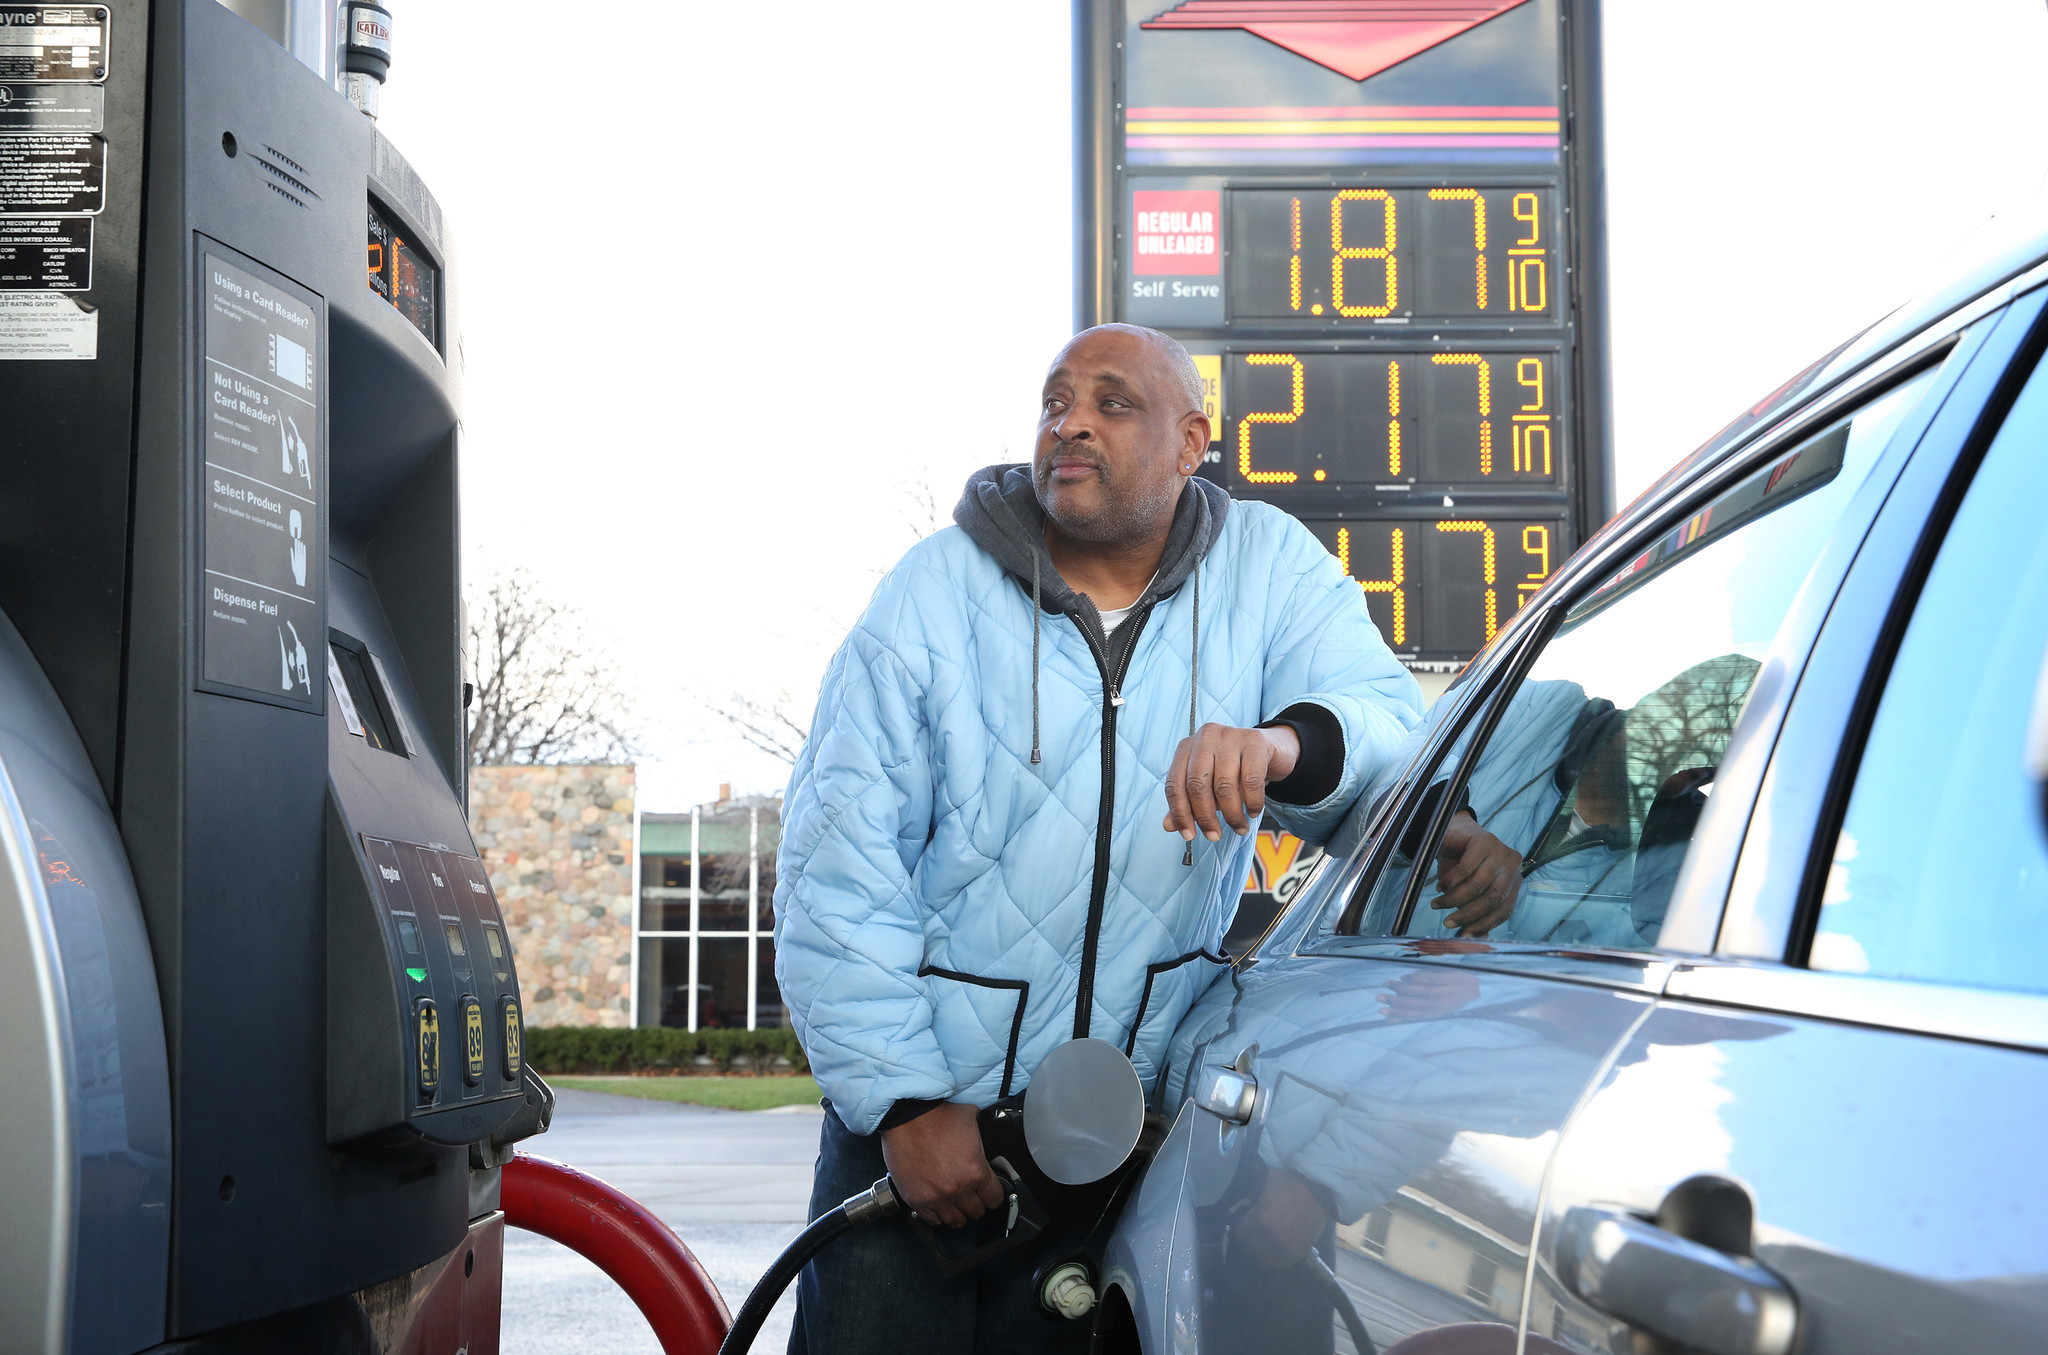 Gas Prices Chicago >> Average Chicago Area Gas Prices Near The 2 Mark Chicago Tribune